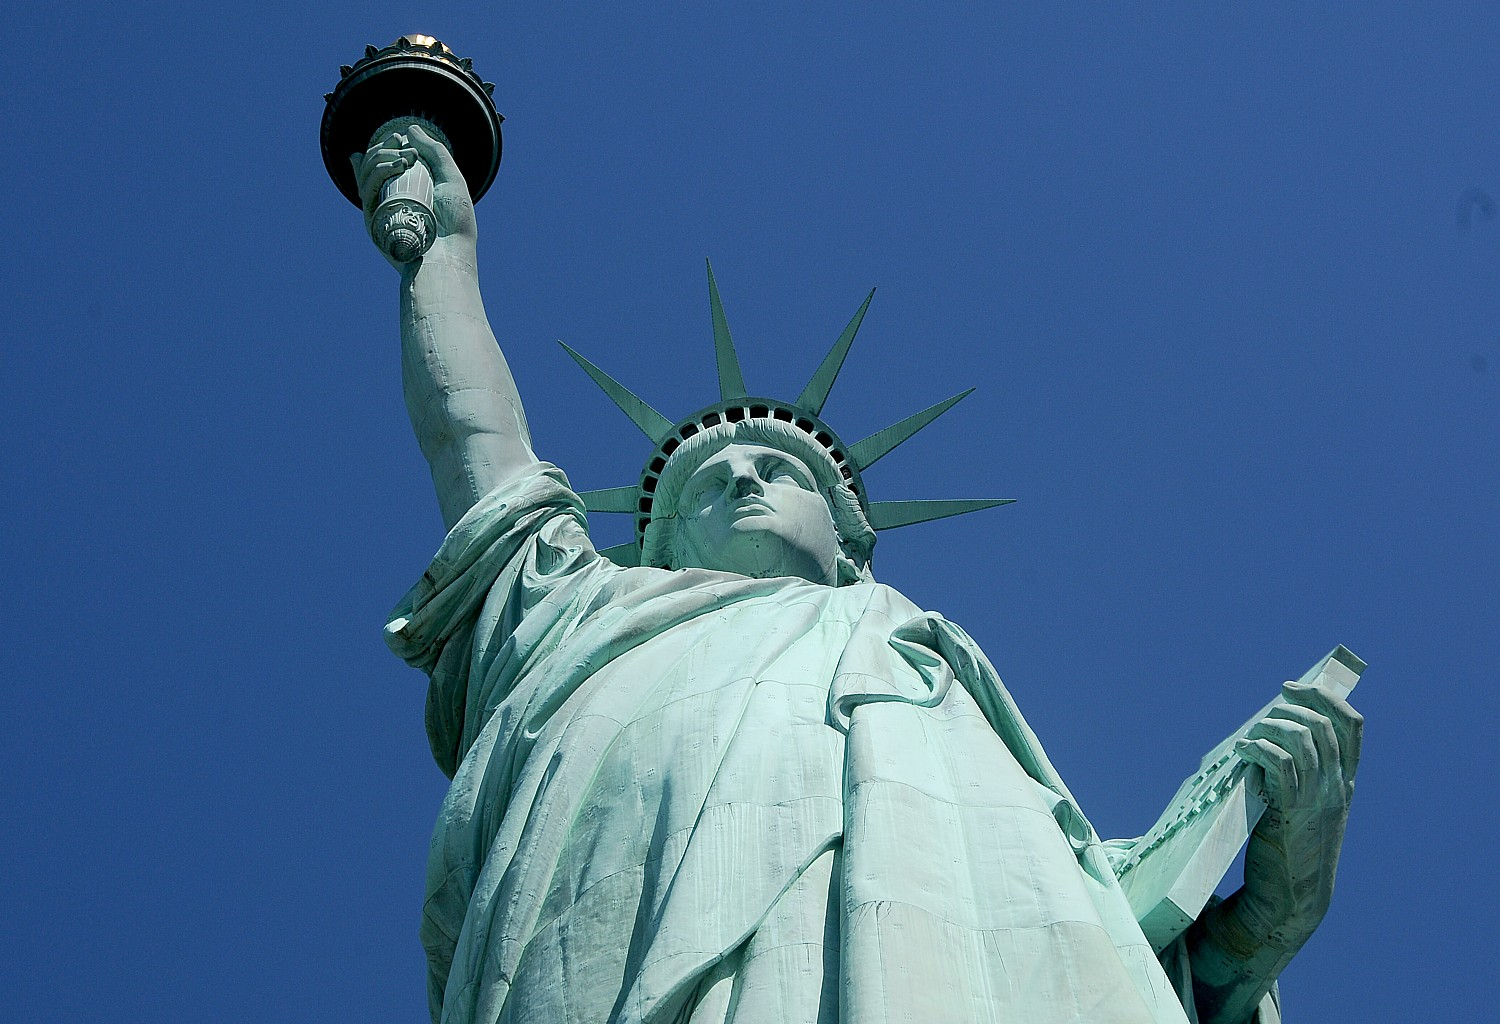 Trump's Muslim ban barring travelers, students, businesspeople, immigrants, refugees from seven countries makes a mockery of all the Statue of Liberty stands for © 2017 Karen Rubin/news-photos-features.com